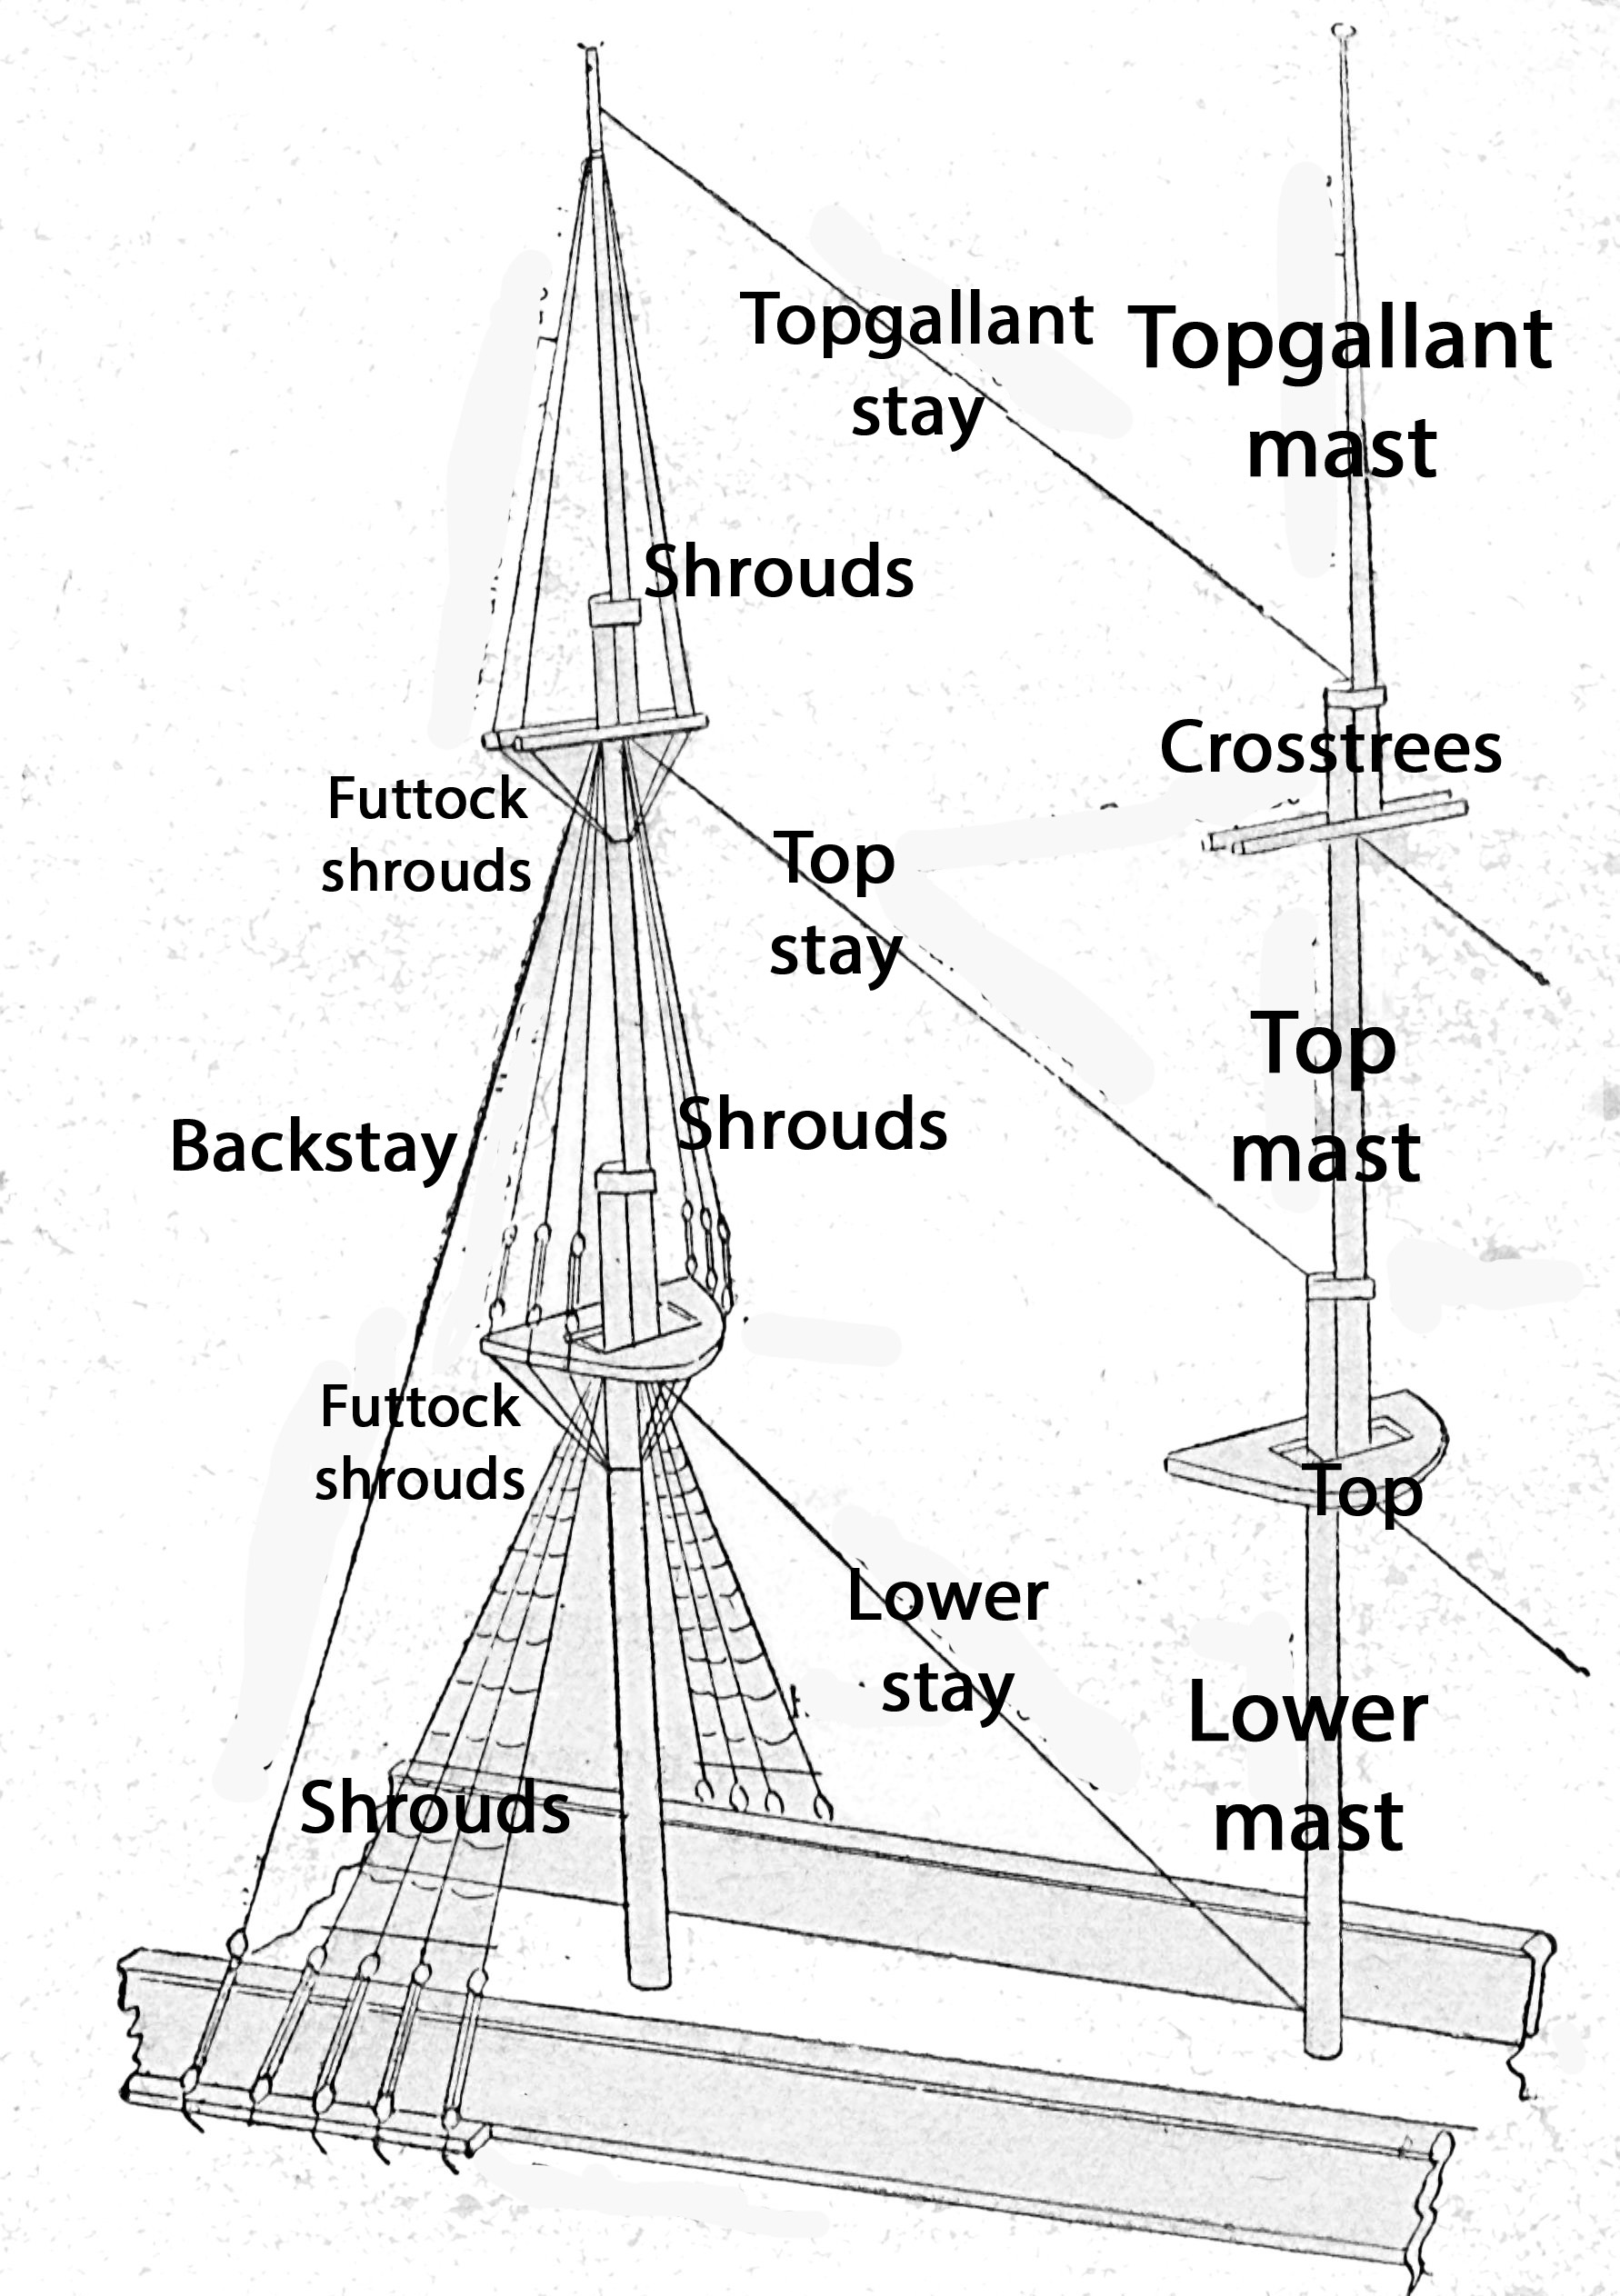 How Could A Tall Ship Repair Its Broken Masts After A